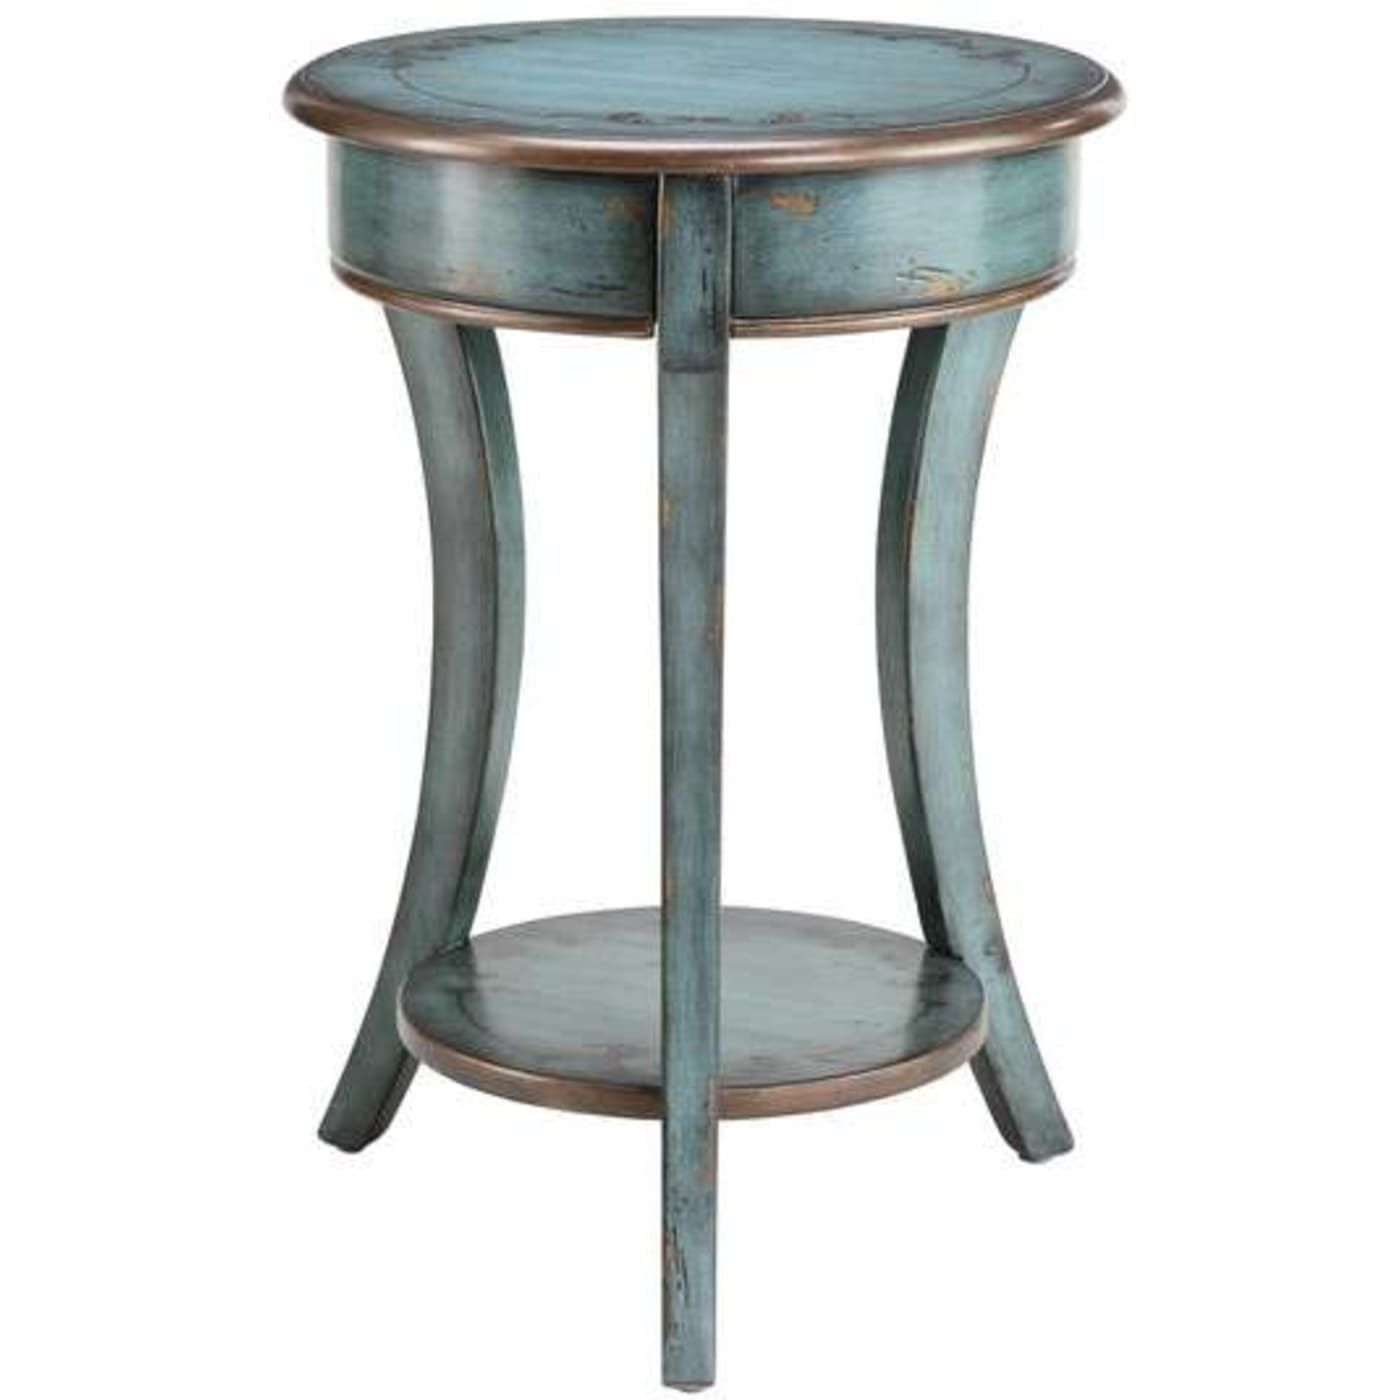 hand painted turquoise finish with bronze rub coffee and side simplify oval accent table brushed silver folding chairs ikea pottery barn art style end tables wide mirrored bedside